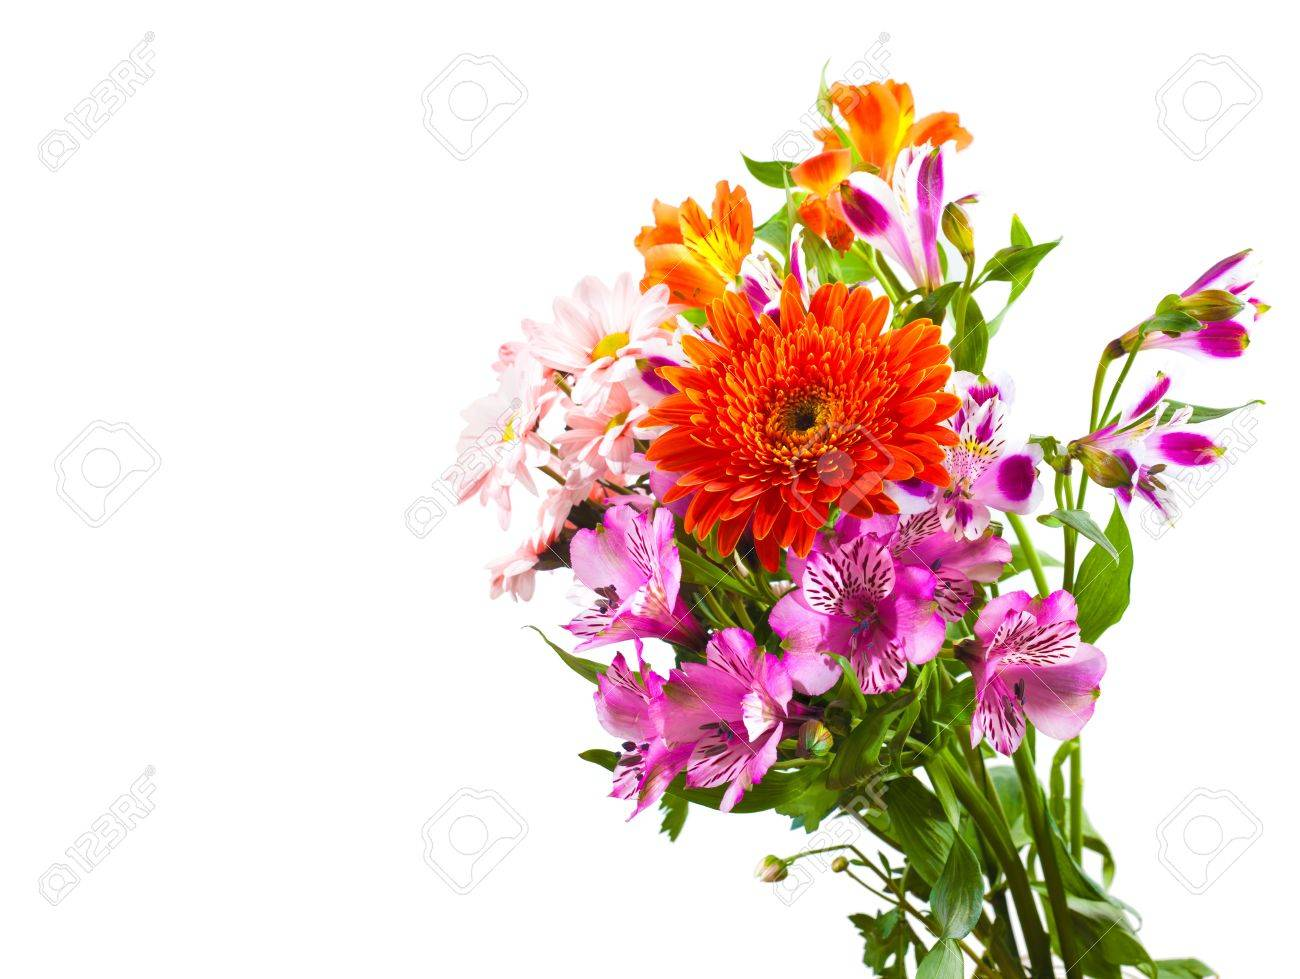 Bright Flower Bouquet Isolated Over White Background Stock Photo ...